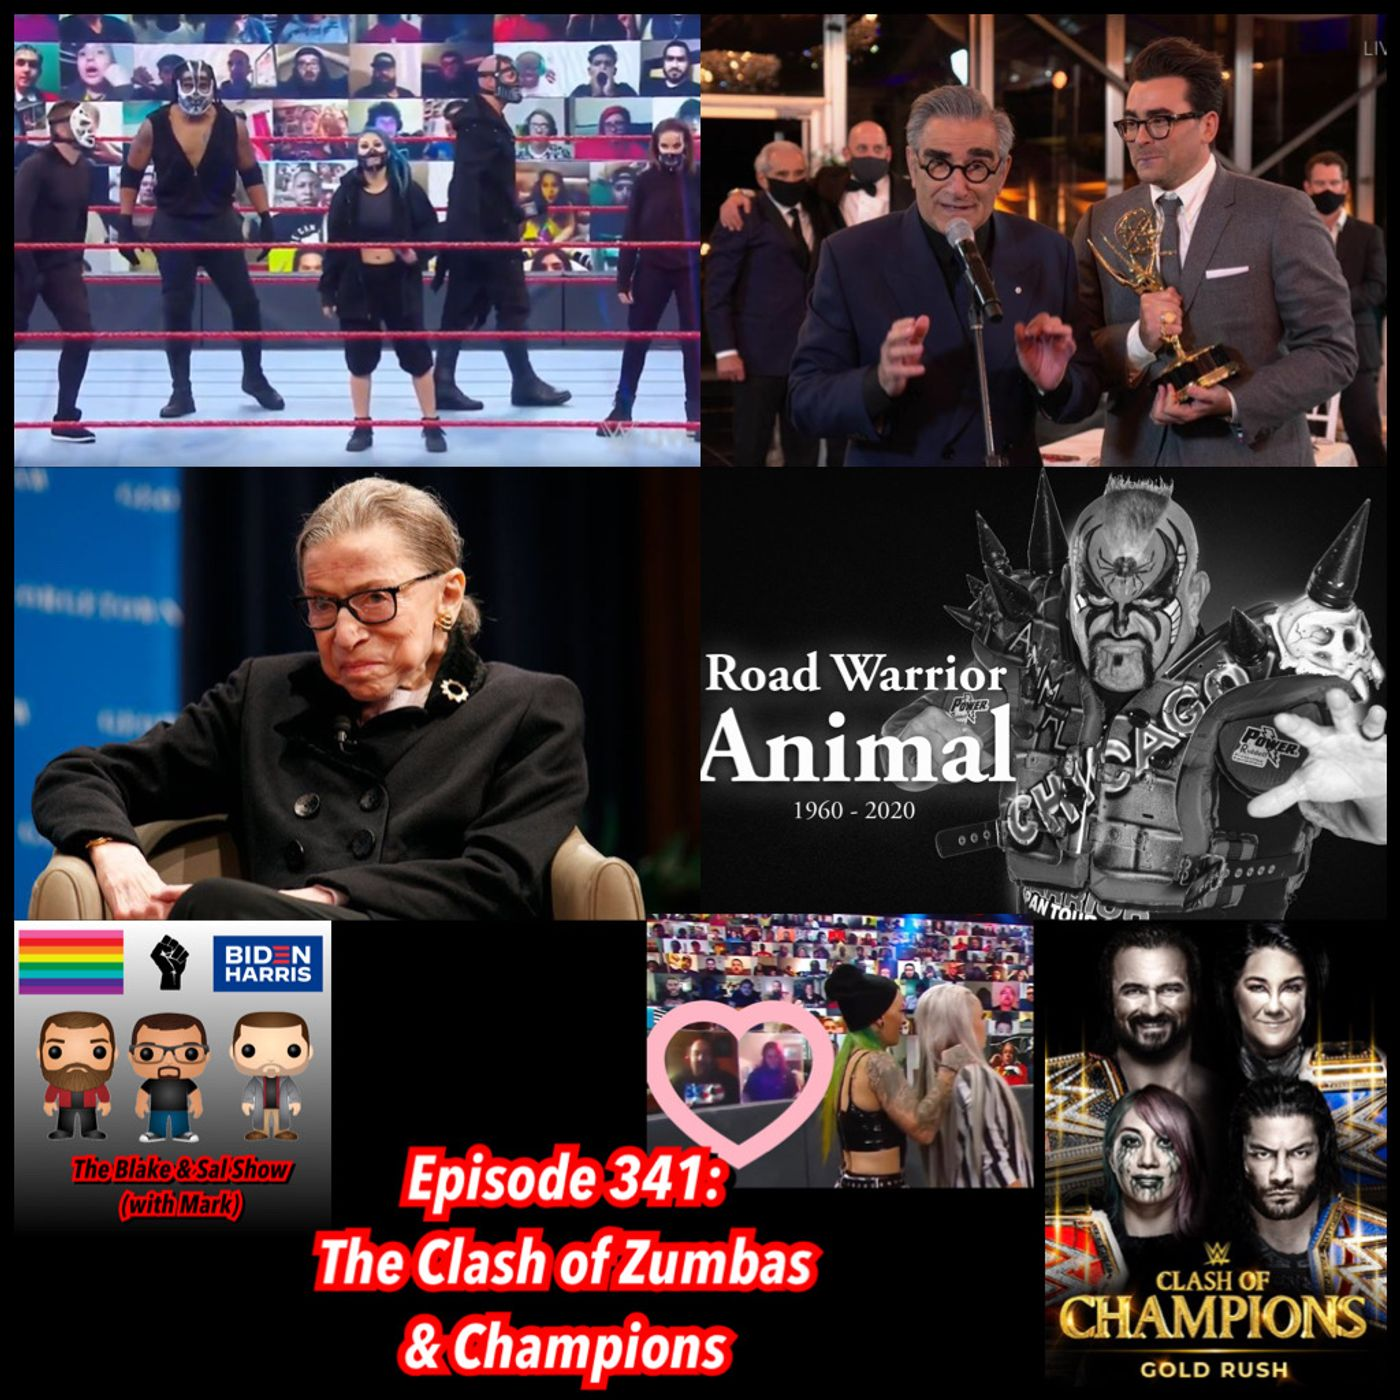 Episode 341: The Clash of Zumbas & Champions